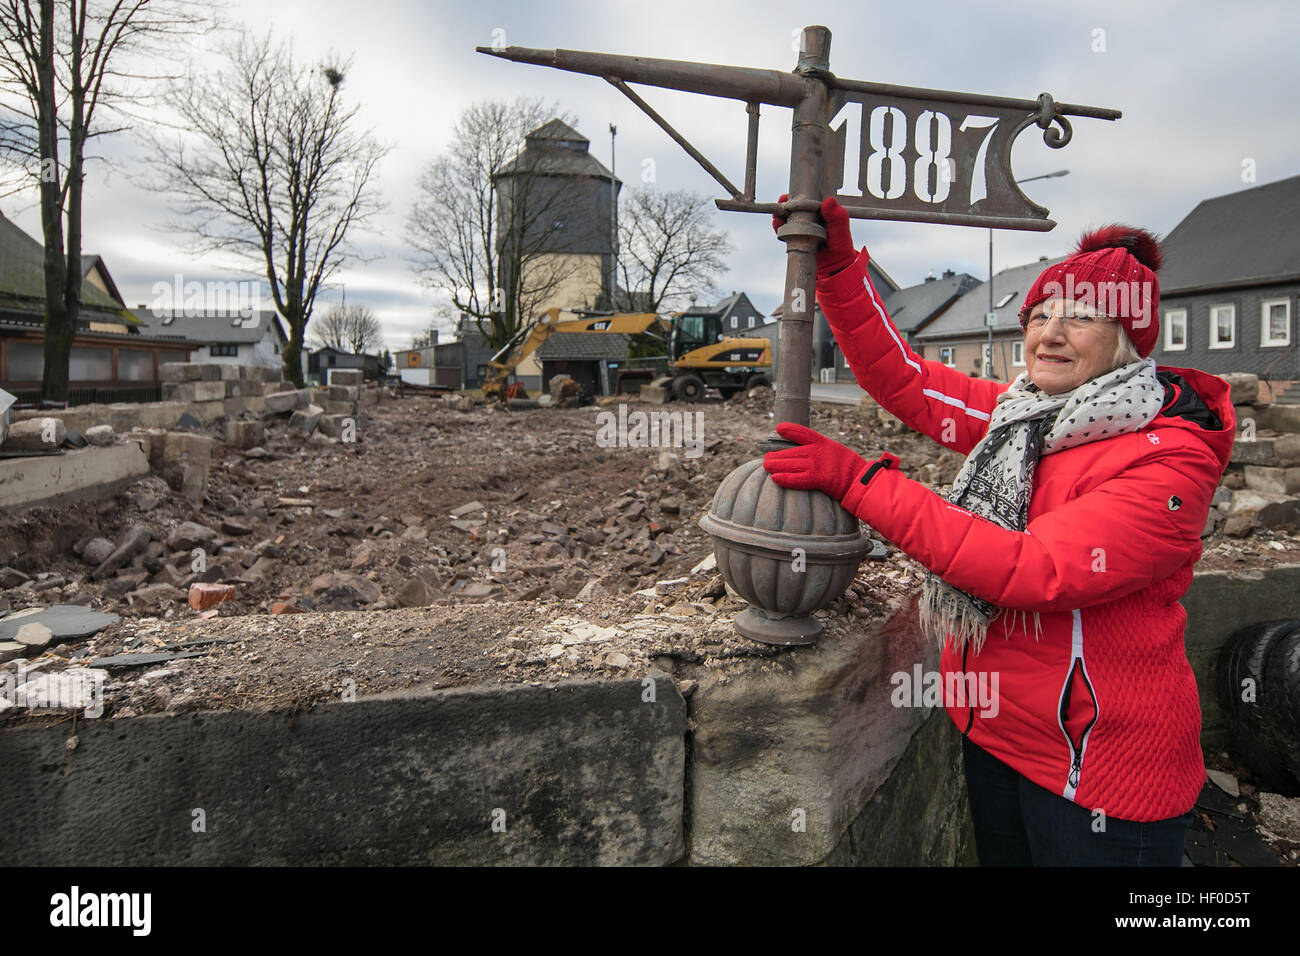 Local councillor Herma Lindenlaub with the steeple top of a demolished in Neustadt am Rennsteig, Germany, 15 December - Stock Image